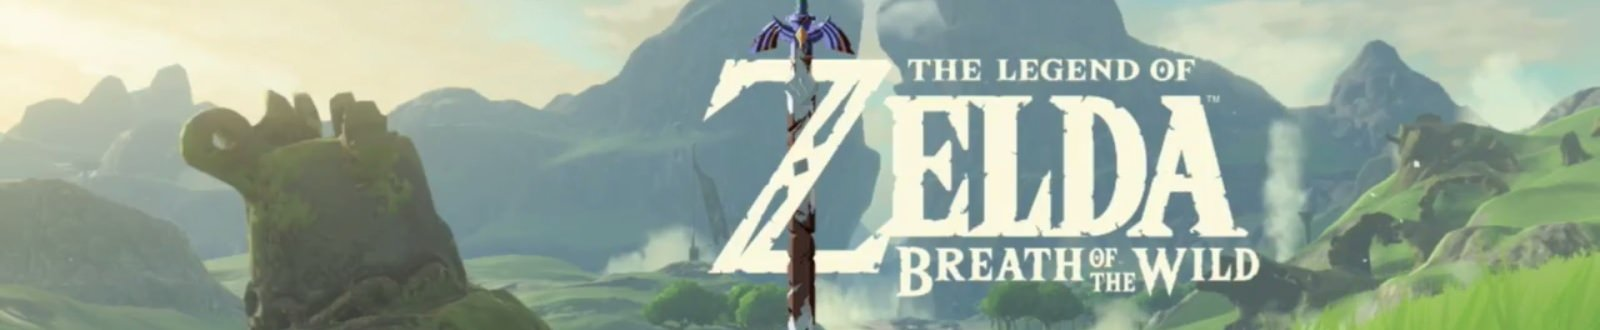 Zelda_breath_of_the_wild-15 zelda botw Zelda BotW Zelda breath of the wild 15